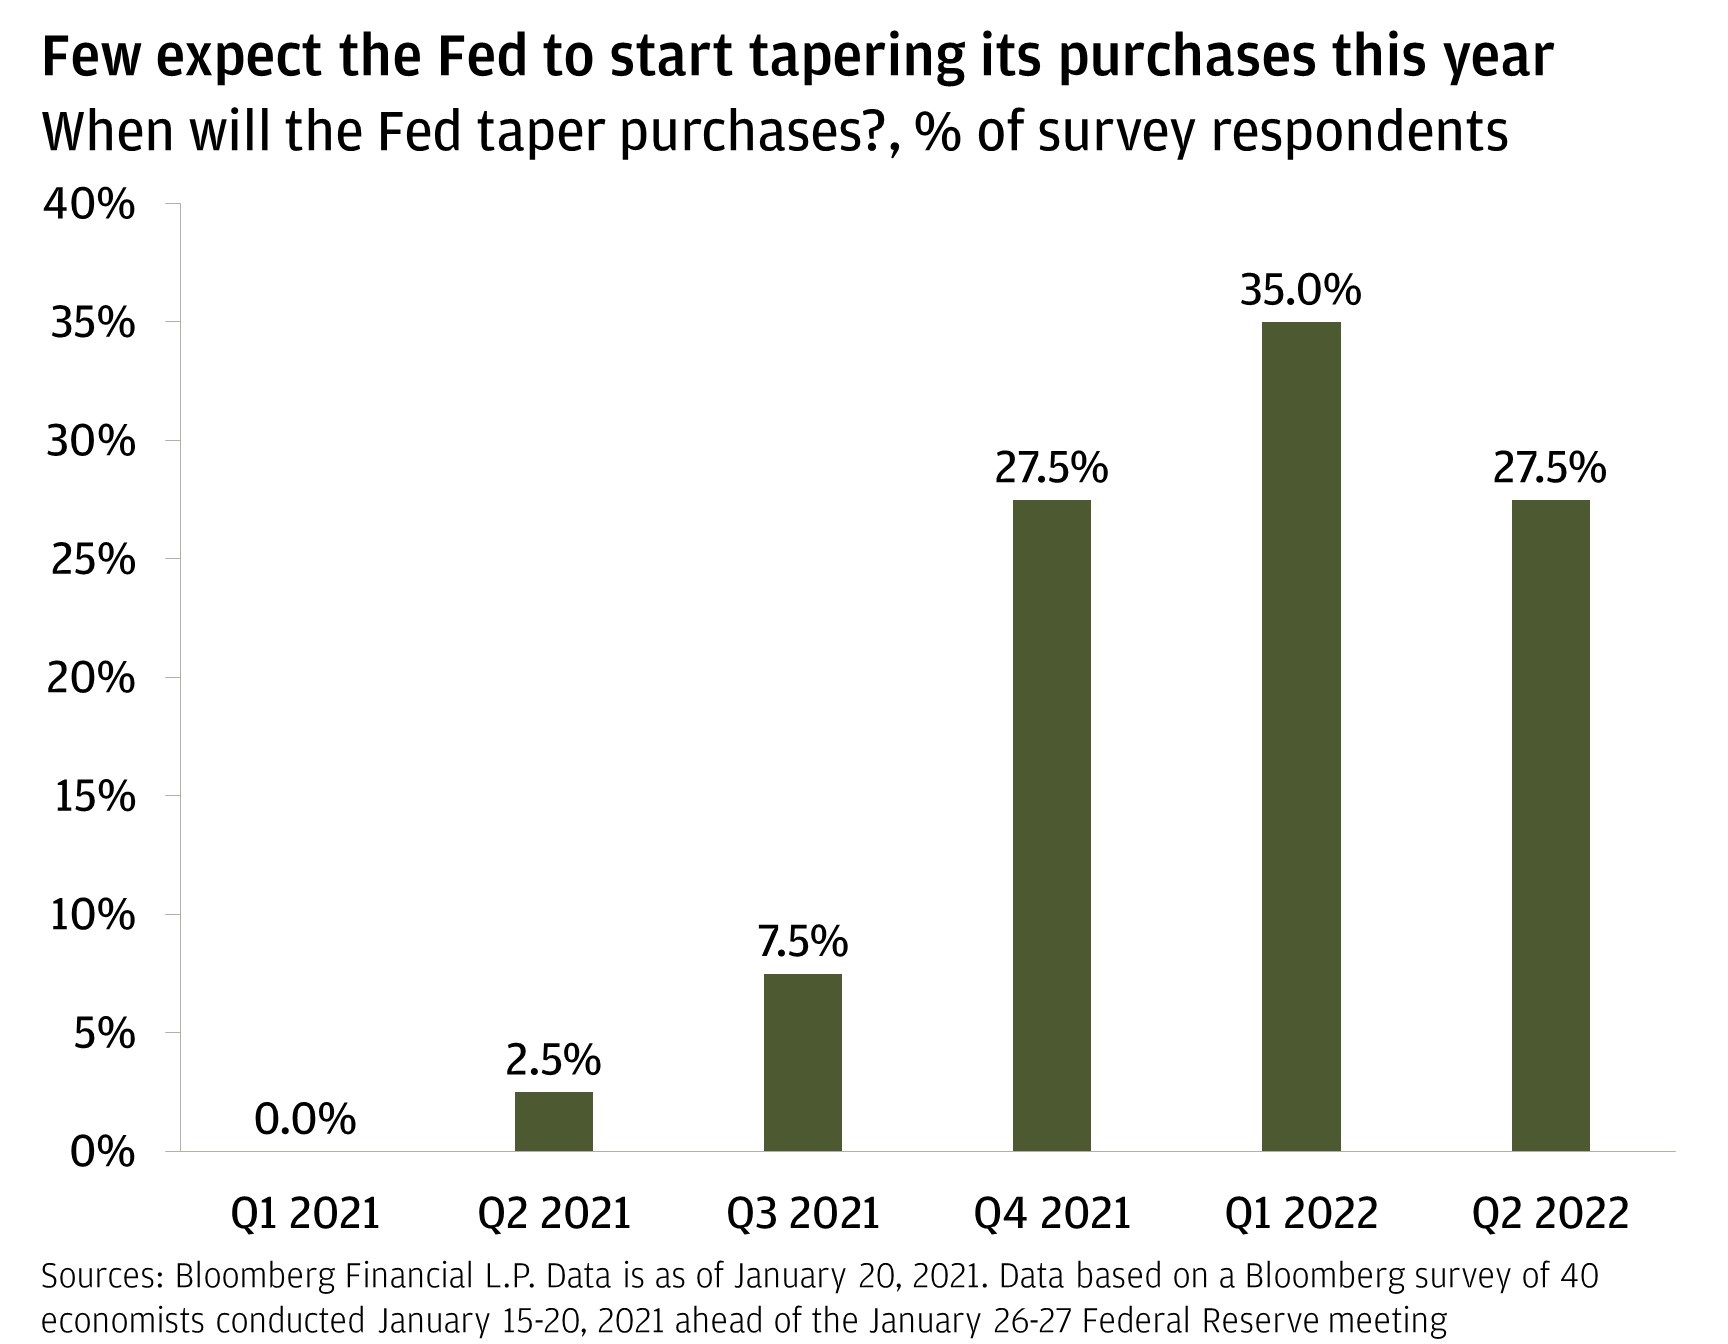 Chart 3: This chart shows what percentage of the 40 economists Bloomberg surveyed believe that the Federal Reserve will start tapering asset purchases by Q1 2021, Q2 2021, Q3 2021, Q4 2021, Q1 2022 or Q2 2022.